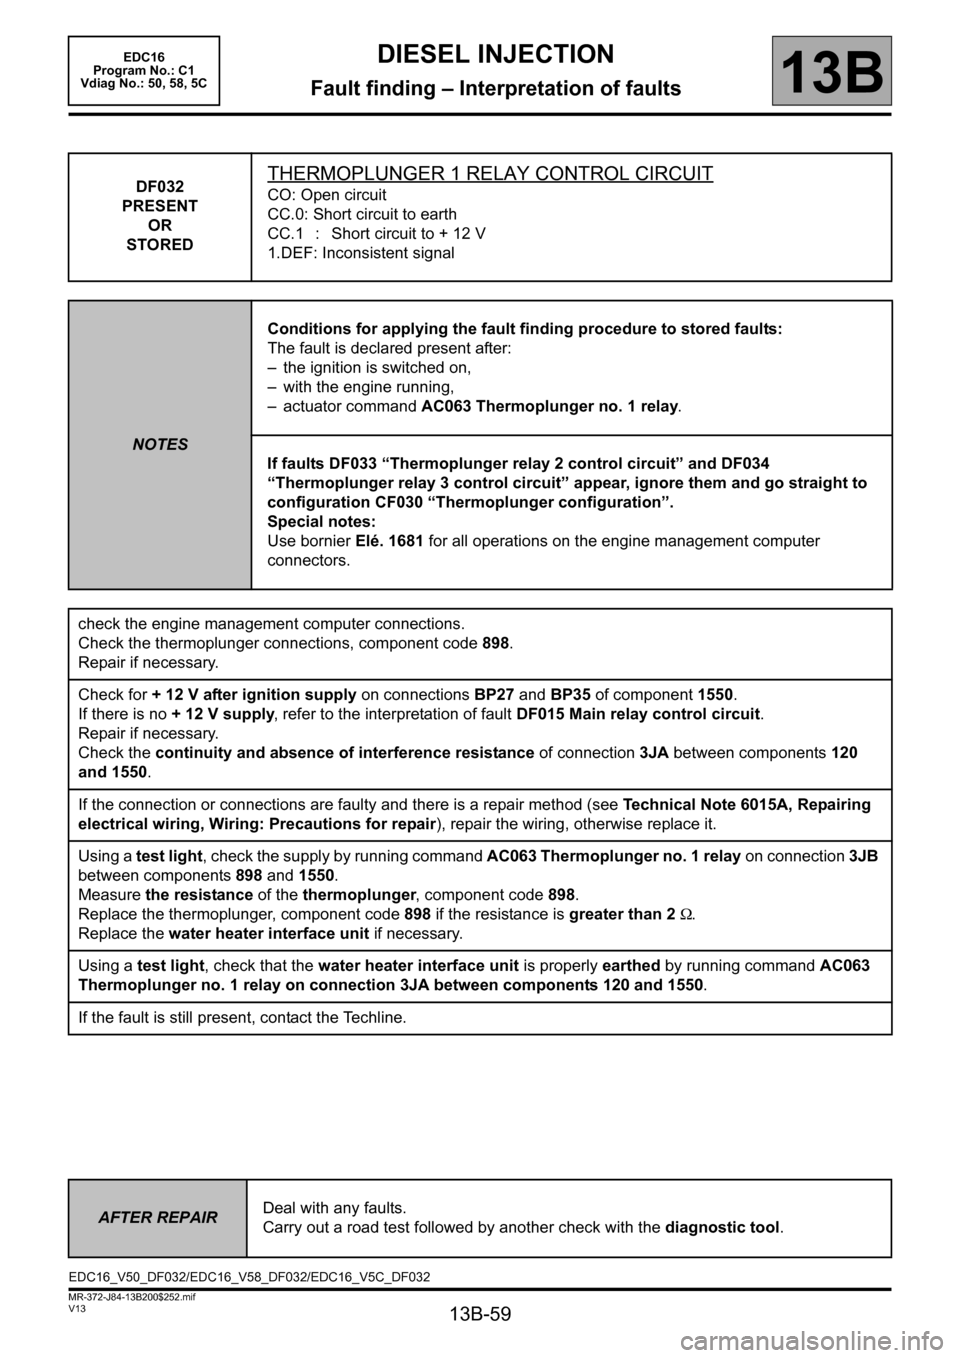 RENAULT SCENIC 2011 J95 / 3.G Engine And Peripherals EDC16 Workshop Manual, Page 59